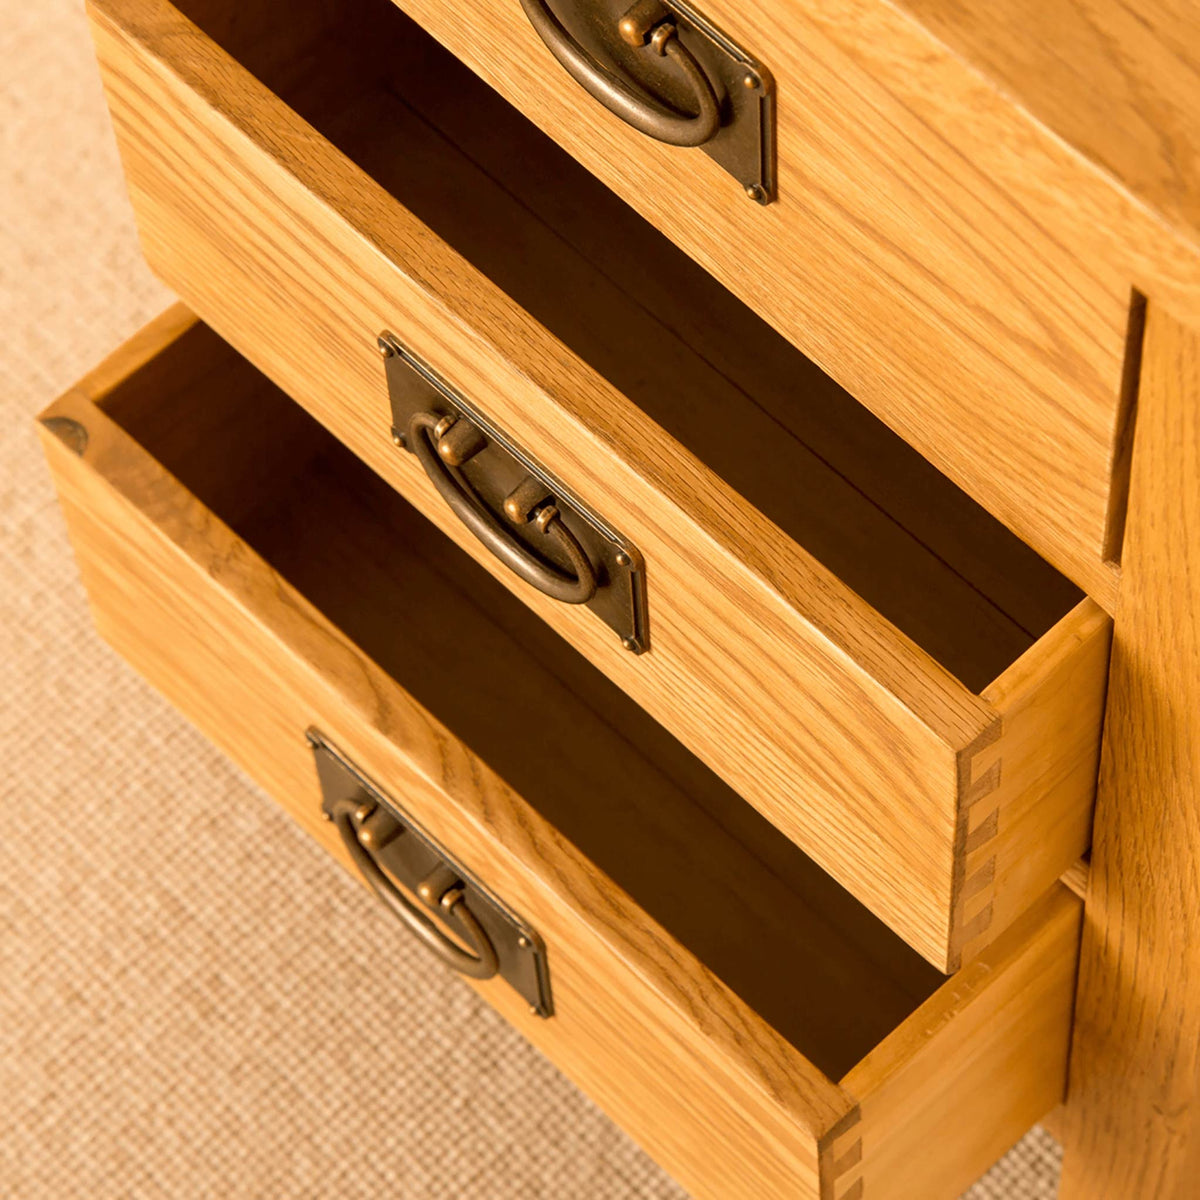 Lanner Oak Bedside Table top view of drawers